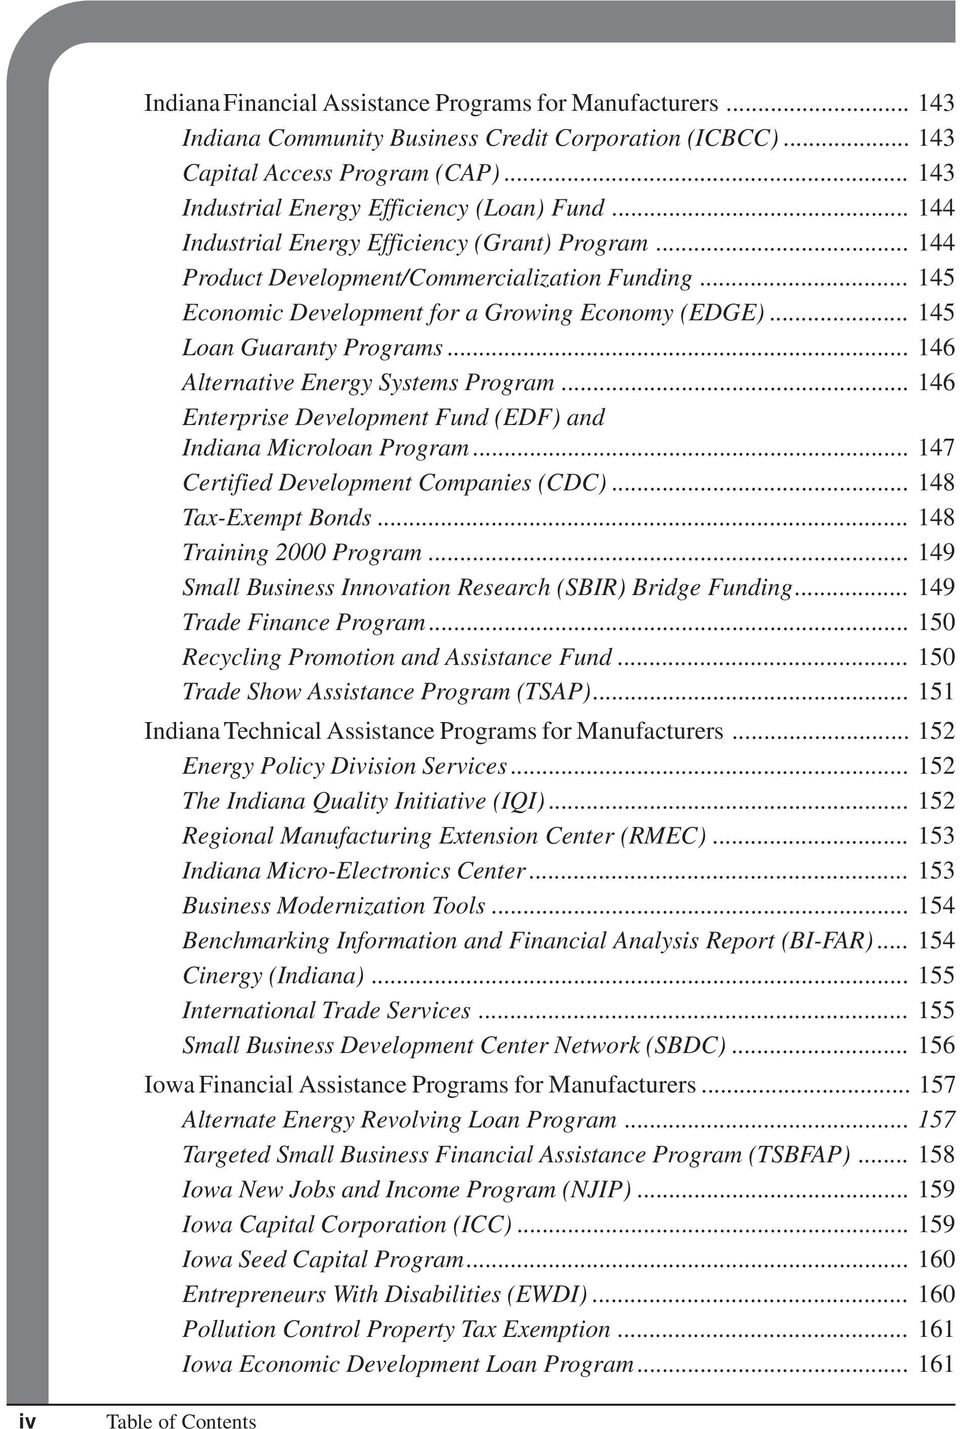 .. 146 Alternative Energy Systems Program... 146 Enterprise Development Fund (EDF) and Indiana Microloan Program... 147 Certified Development Companies (CDC)... 148 Tax-Exempt Bonds.